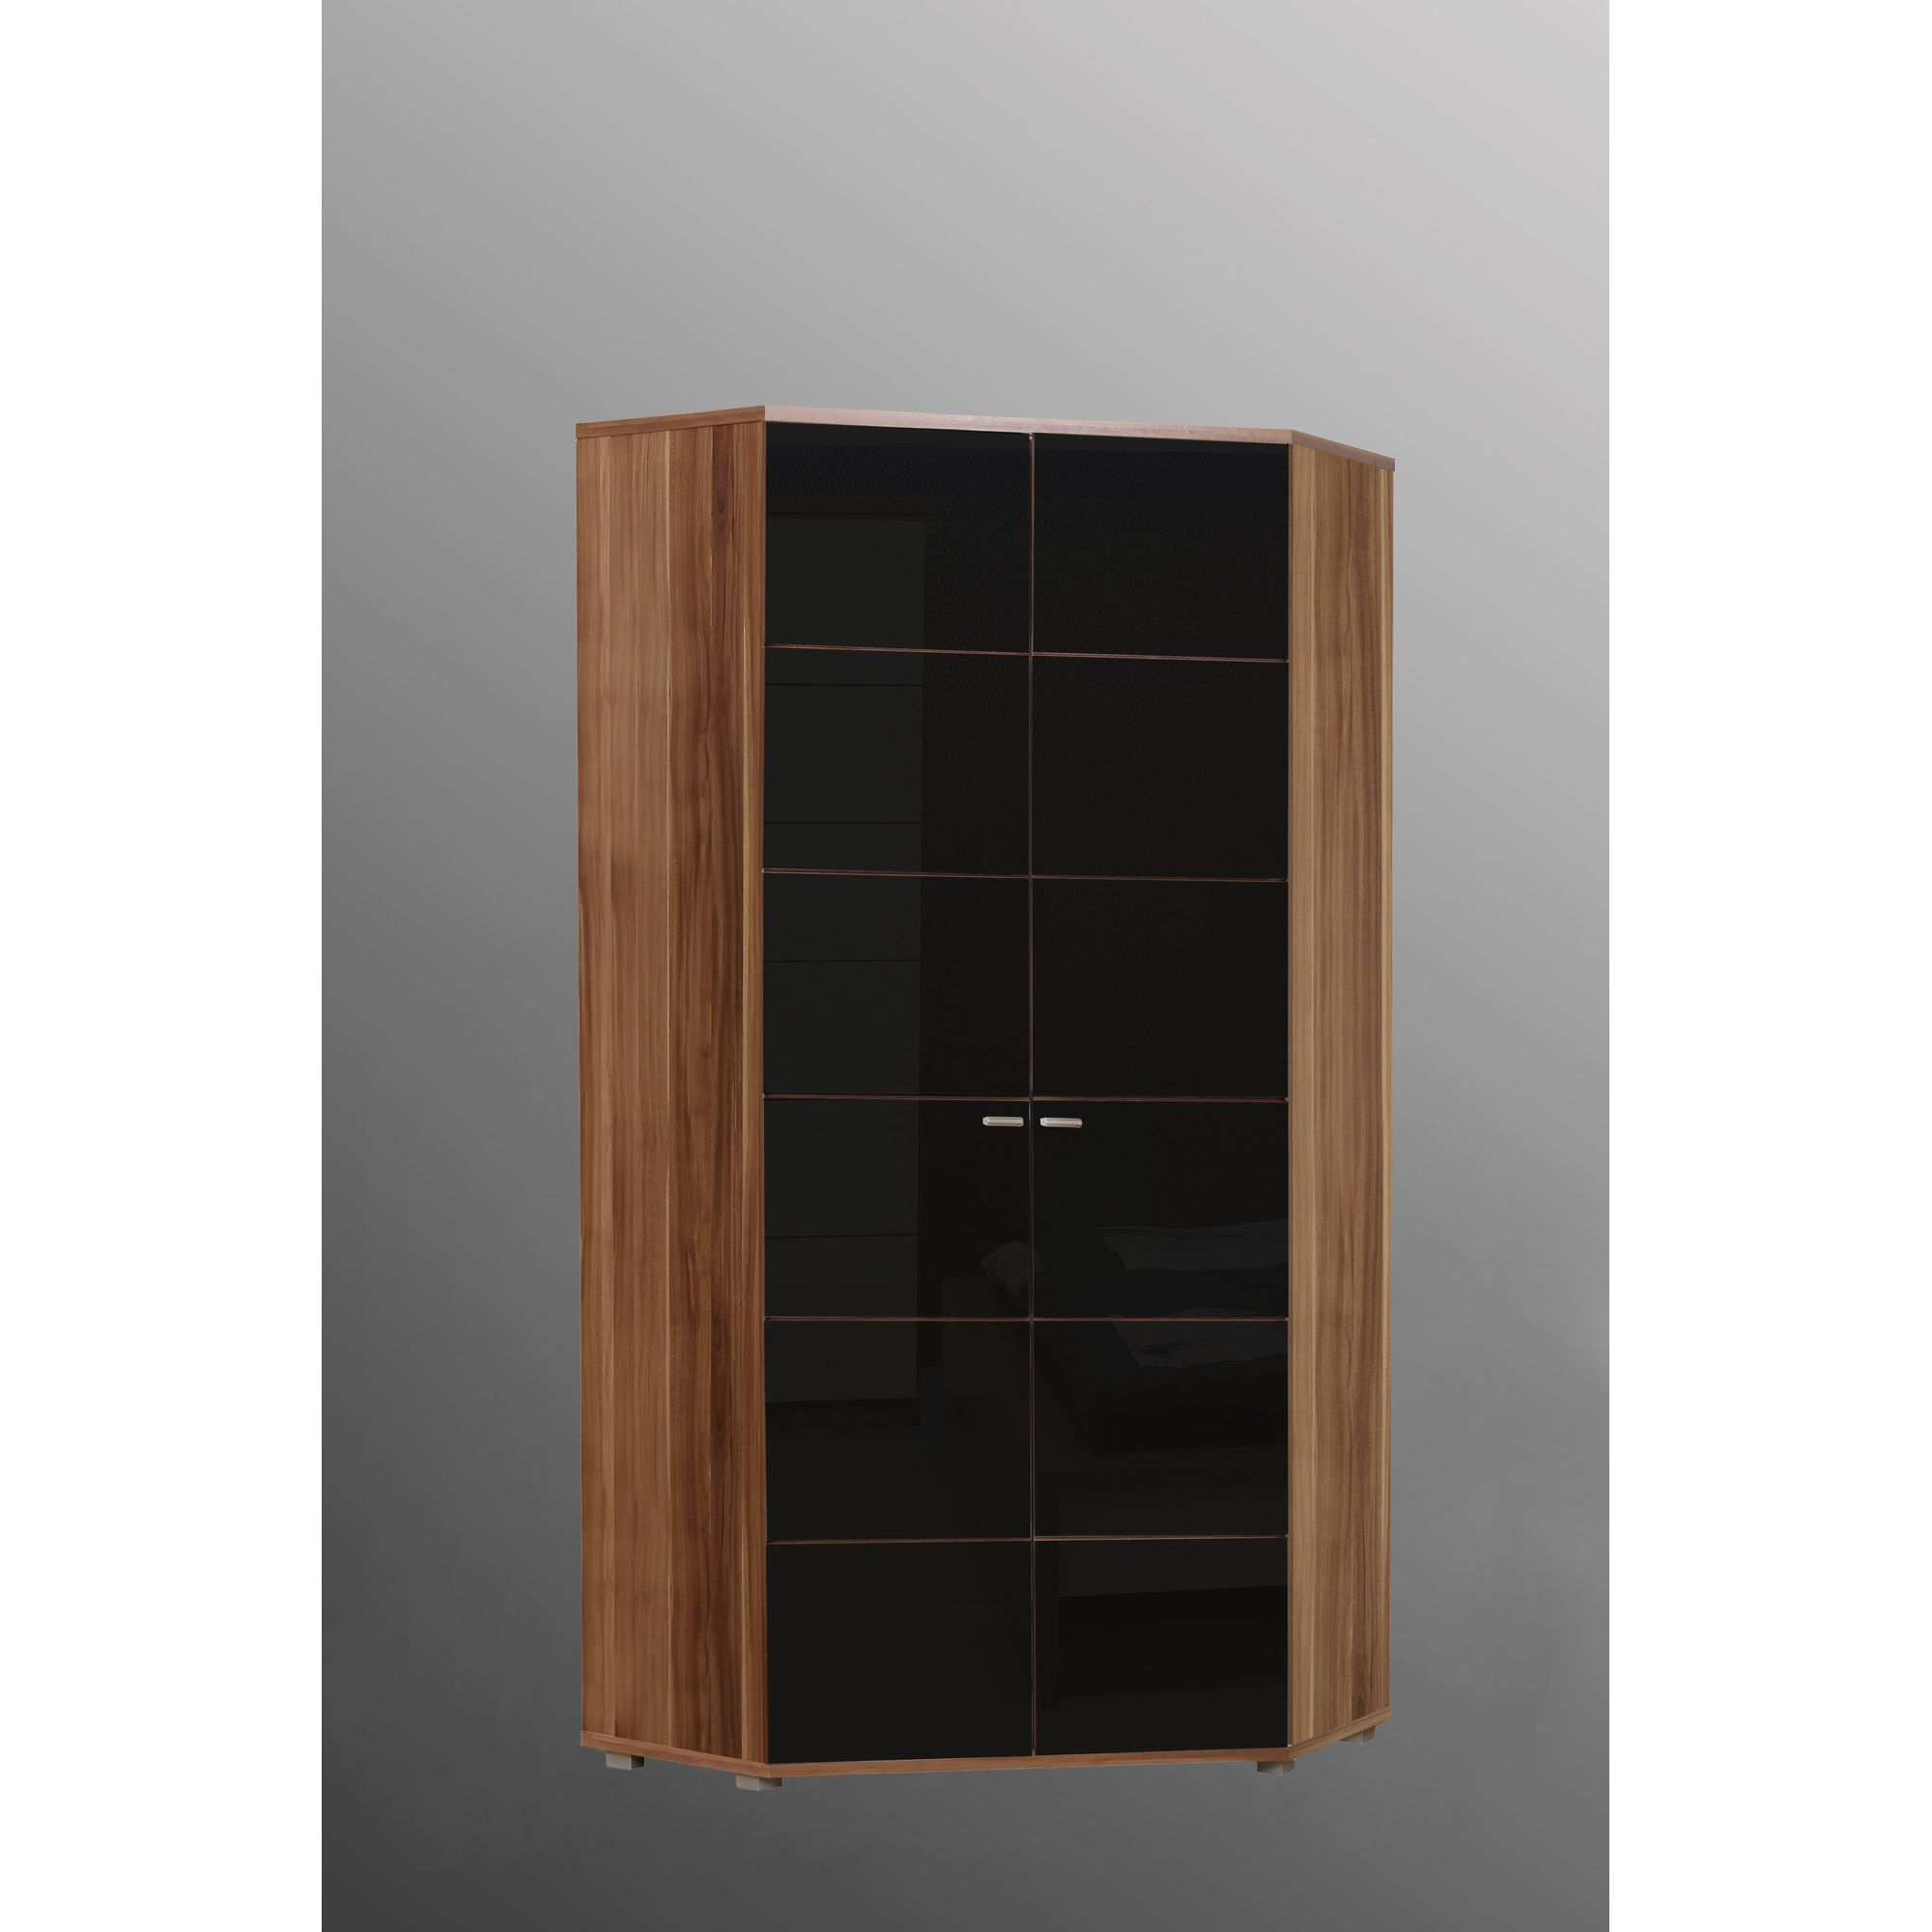 Ideal Furniture Anemone Corner Wardrobe - Walnut with Black Gloss at Tesco Direct